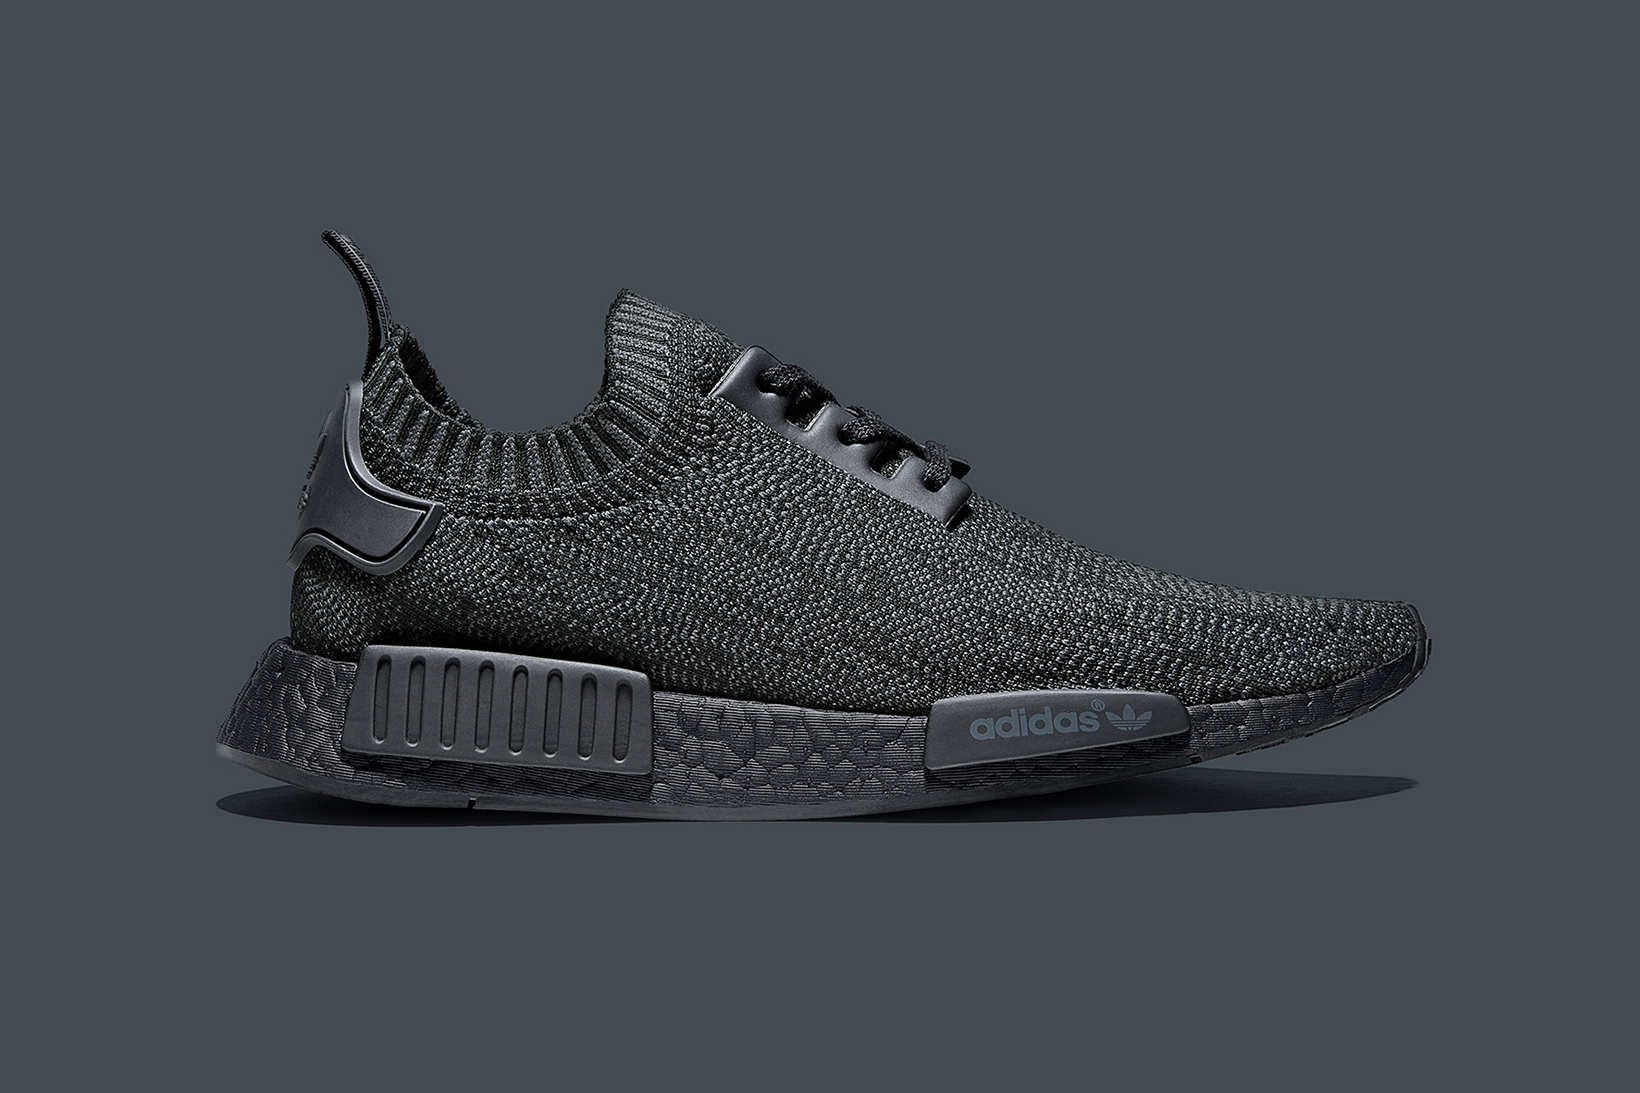 qmdlbf adidas Originals NMD R1 PK Pitch Black Friends and Family | HYPEBEAST